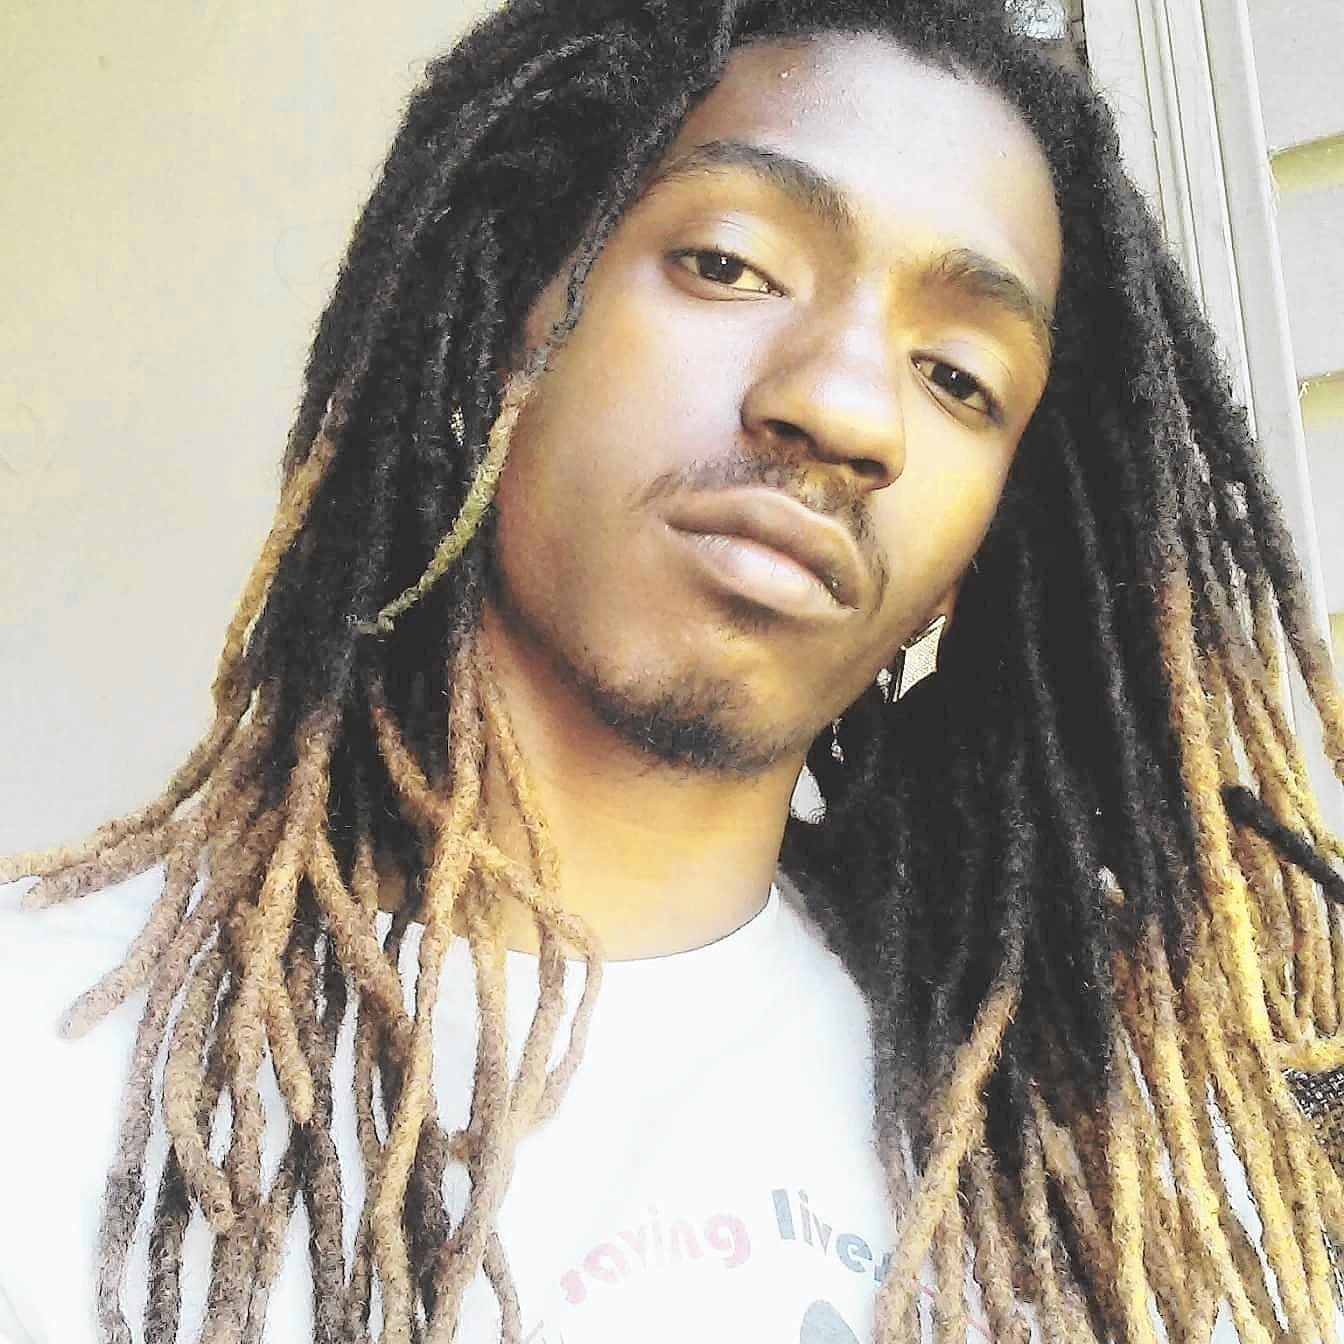 Cousin Recalls Hazel Crest Shooting Victim As 'quiet Kid